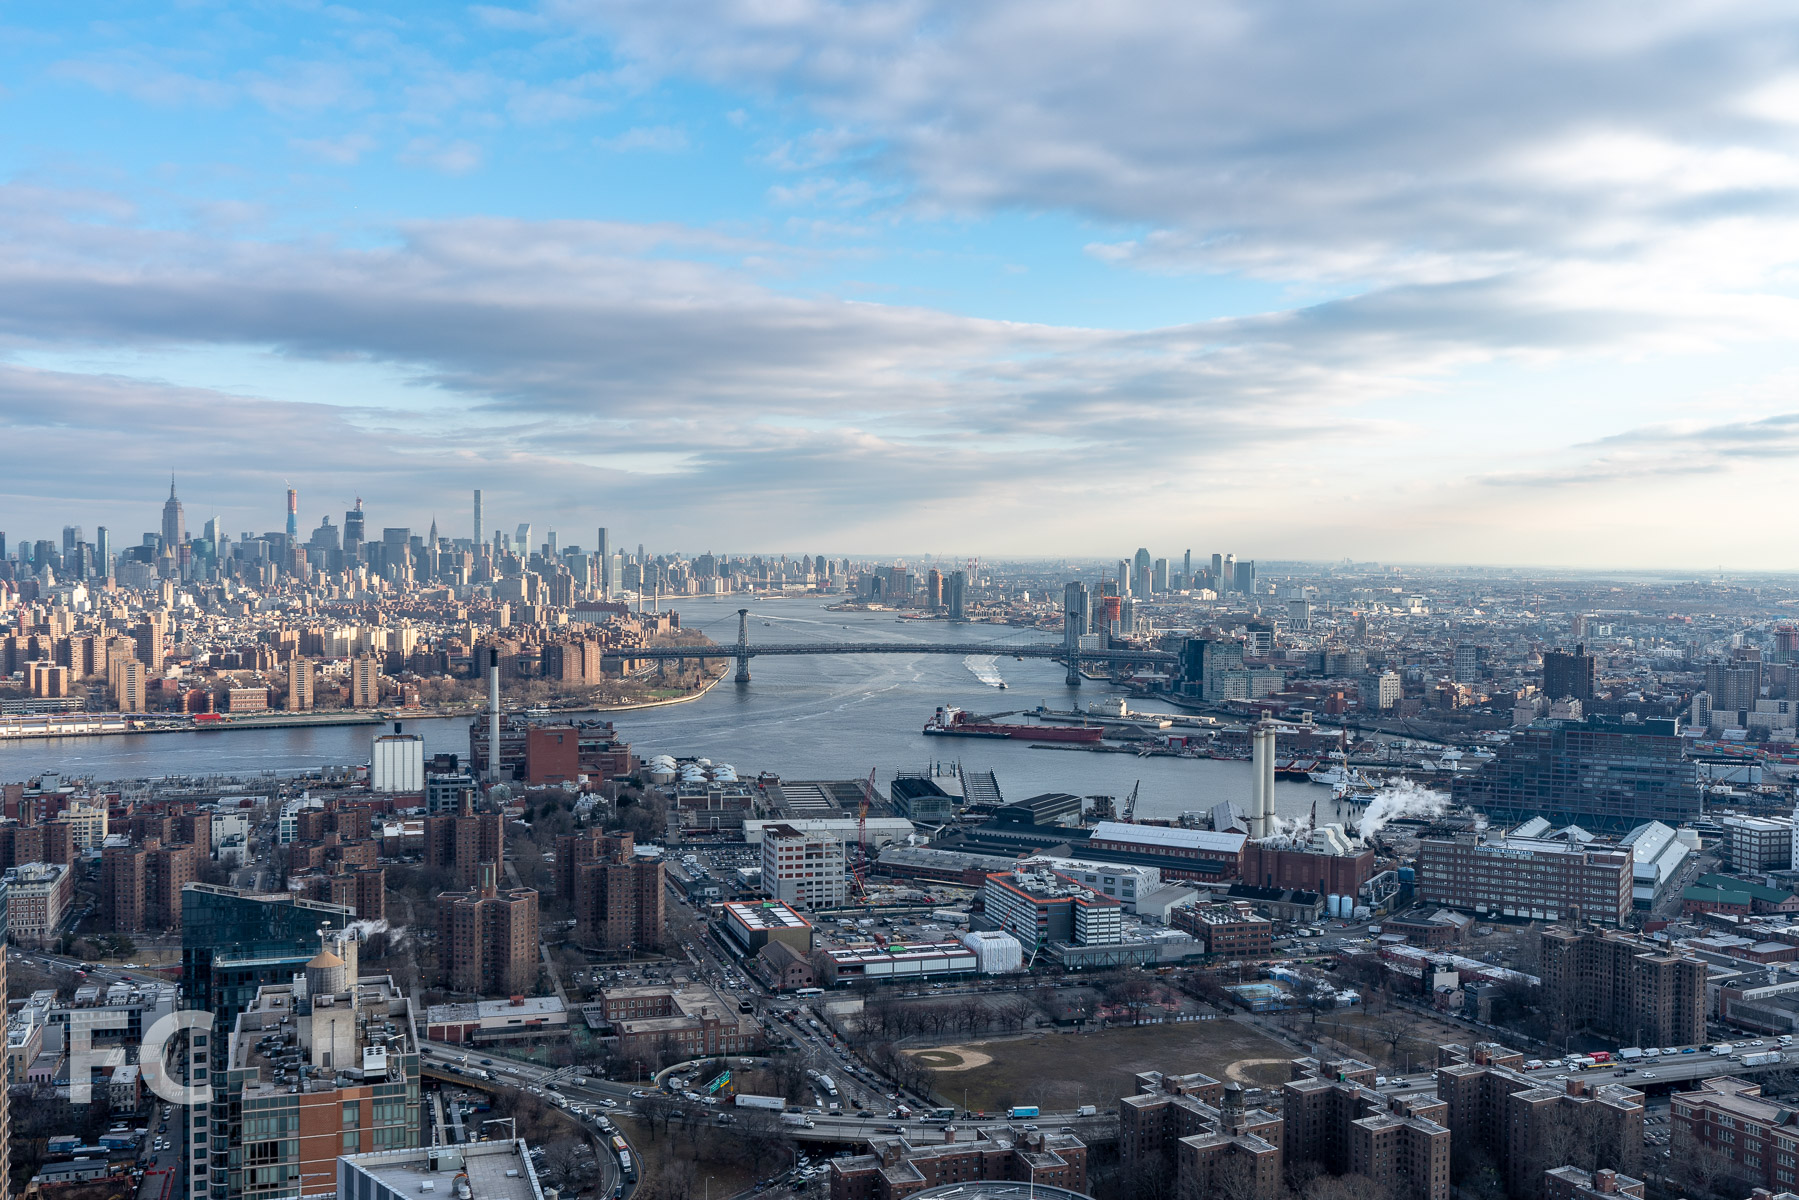 View north towards Lower Manhattan and the Brooklyn waterfront from an upper floor.